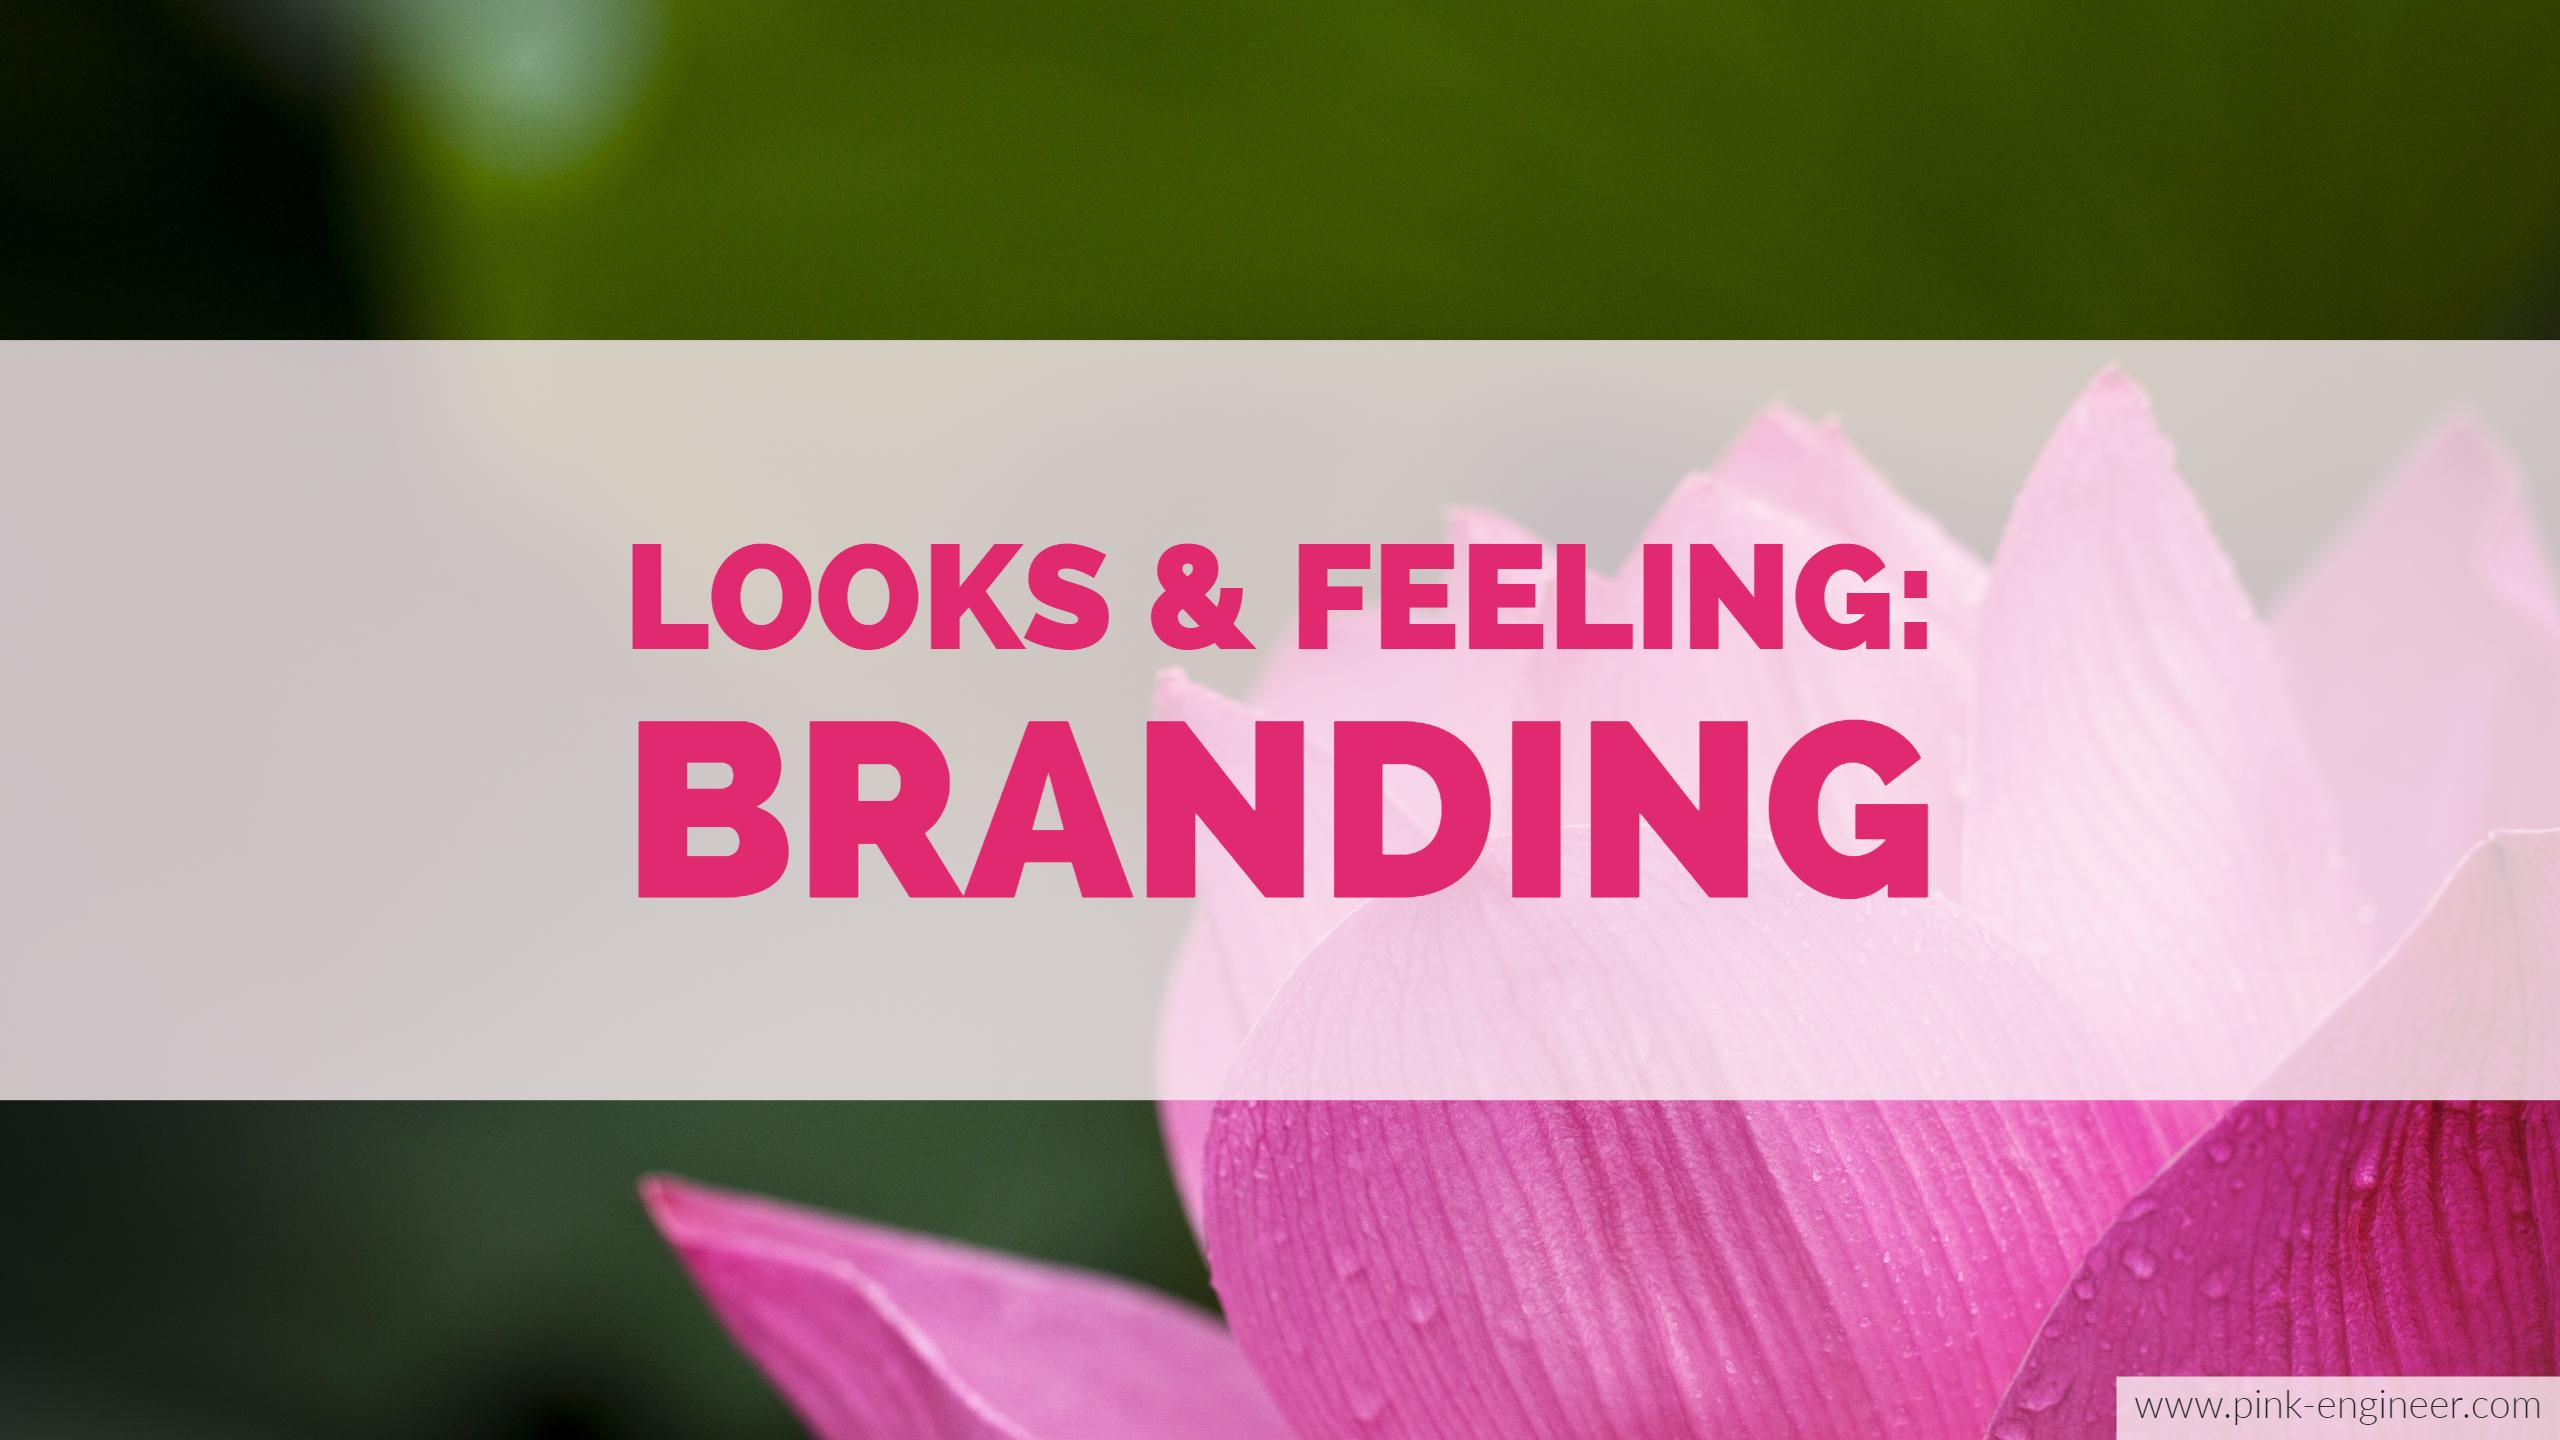 Looks & Feeling: Branding